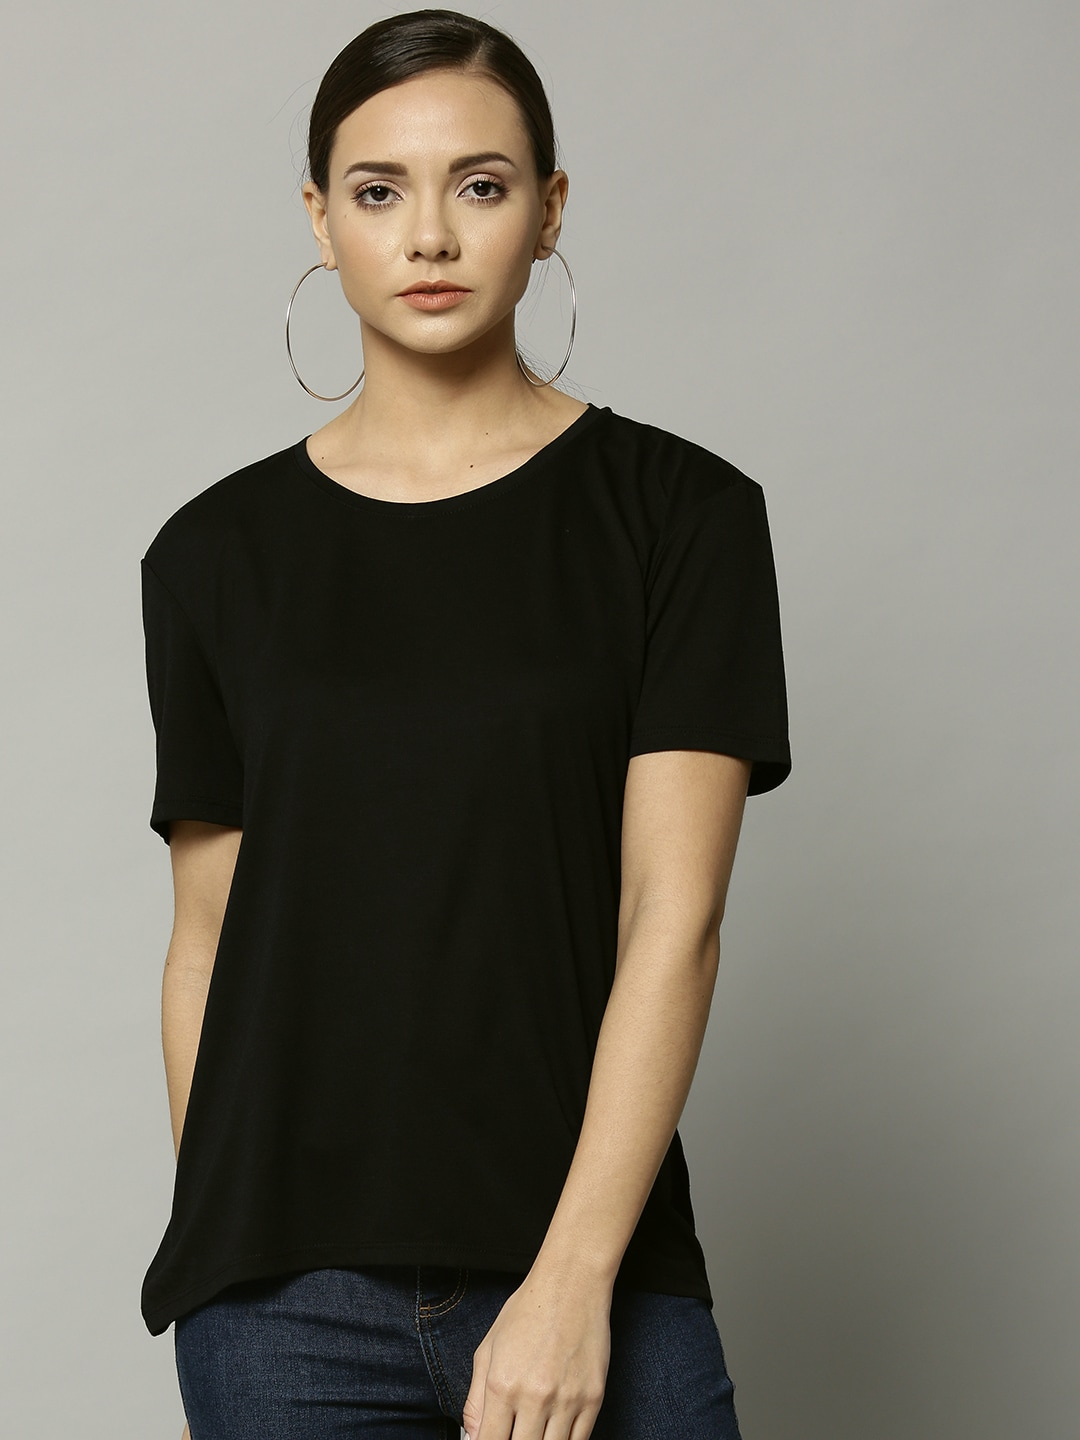 c64474496bde1a Ladies Tops - Buy Tops   T-shirts for Women Online